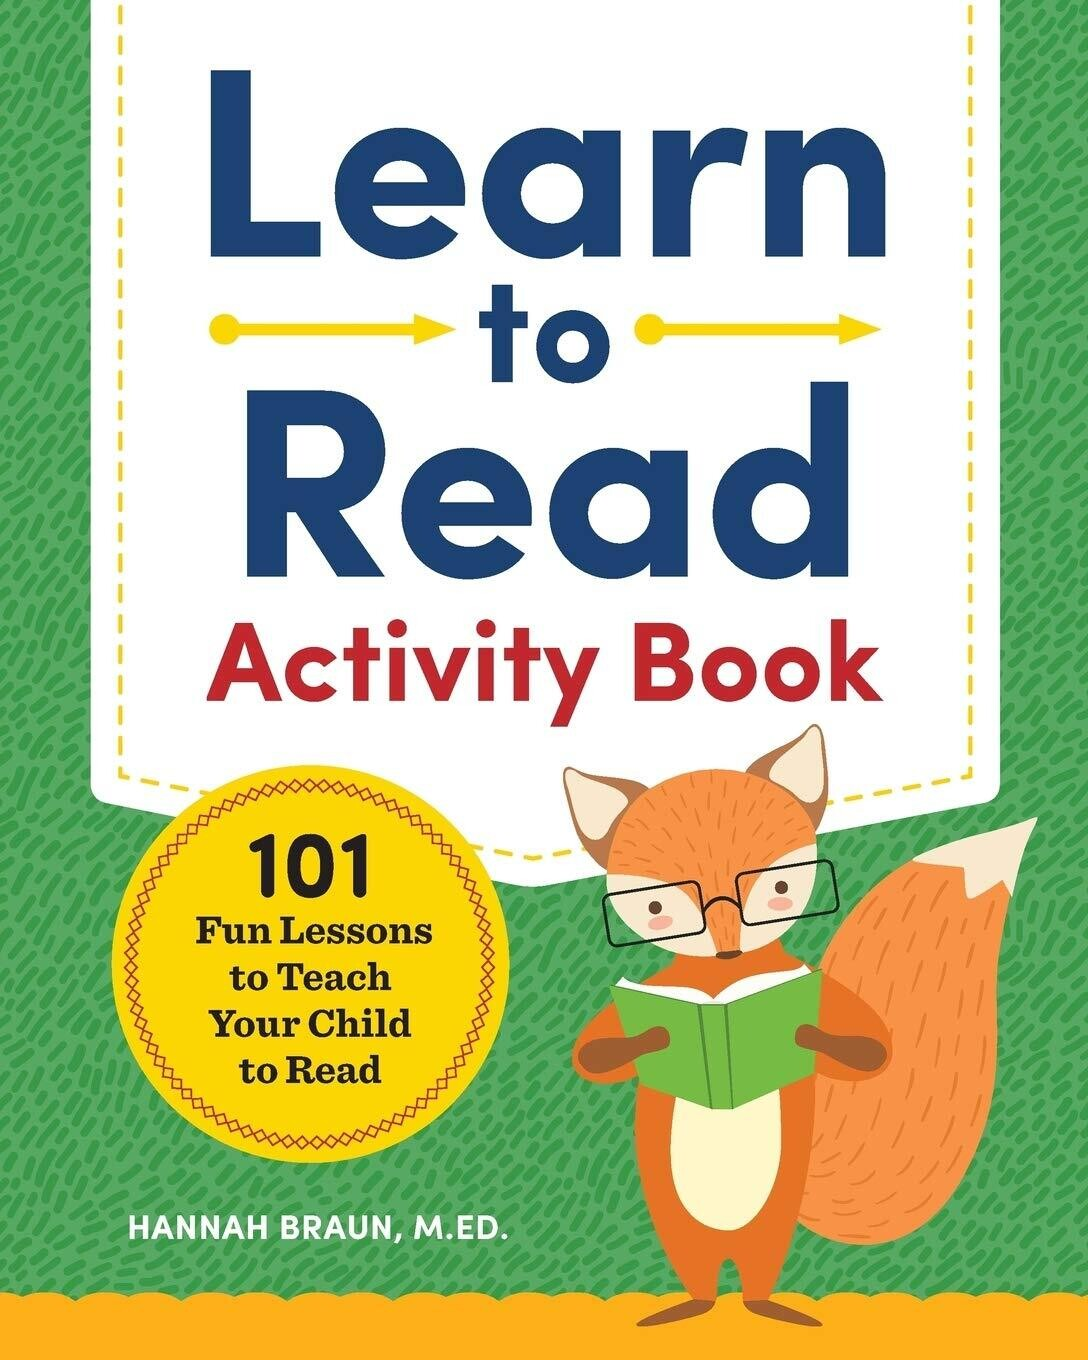 Learn to Read Activity Book: Illustrated